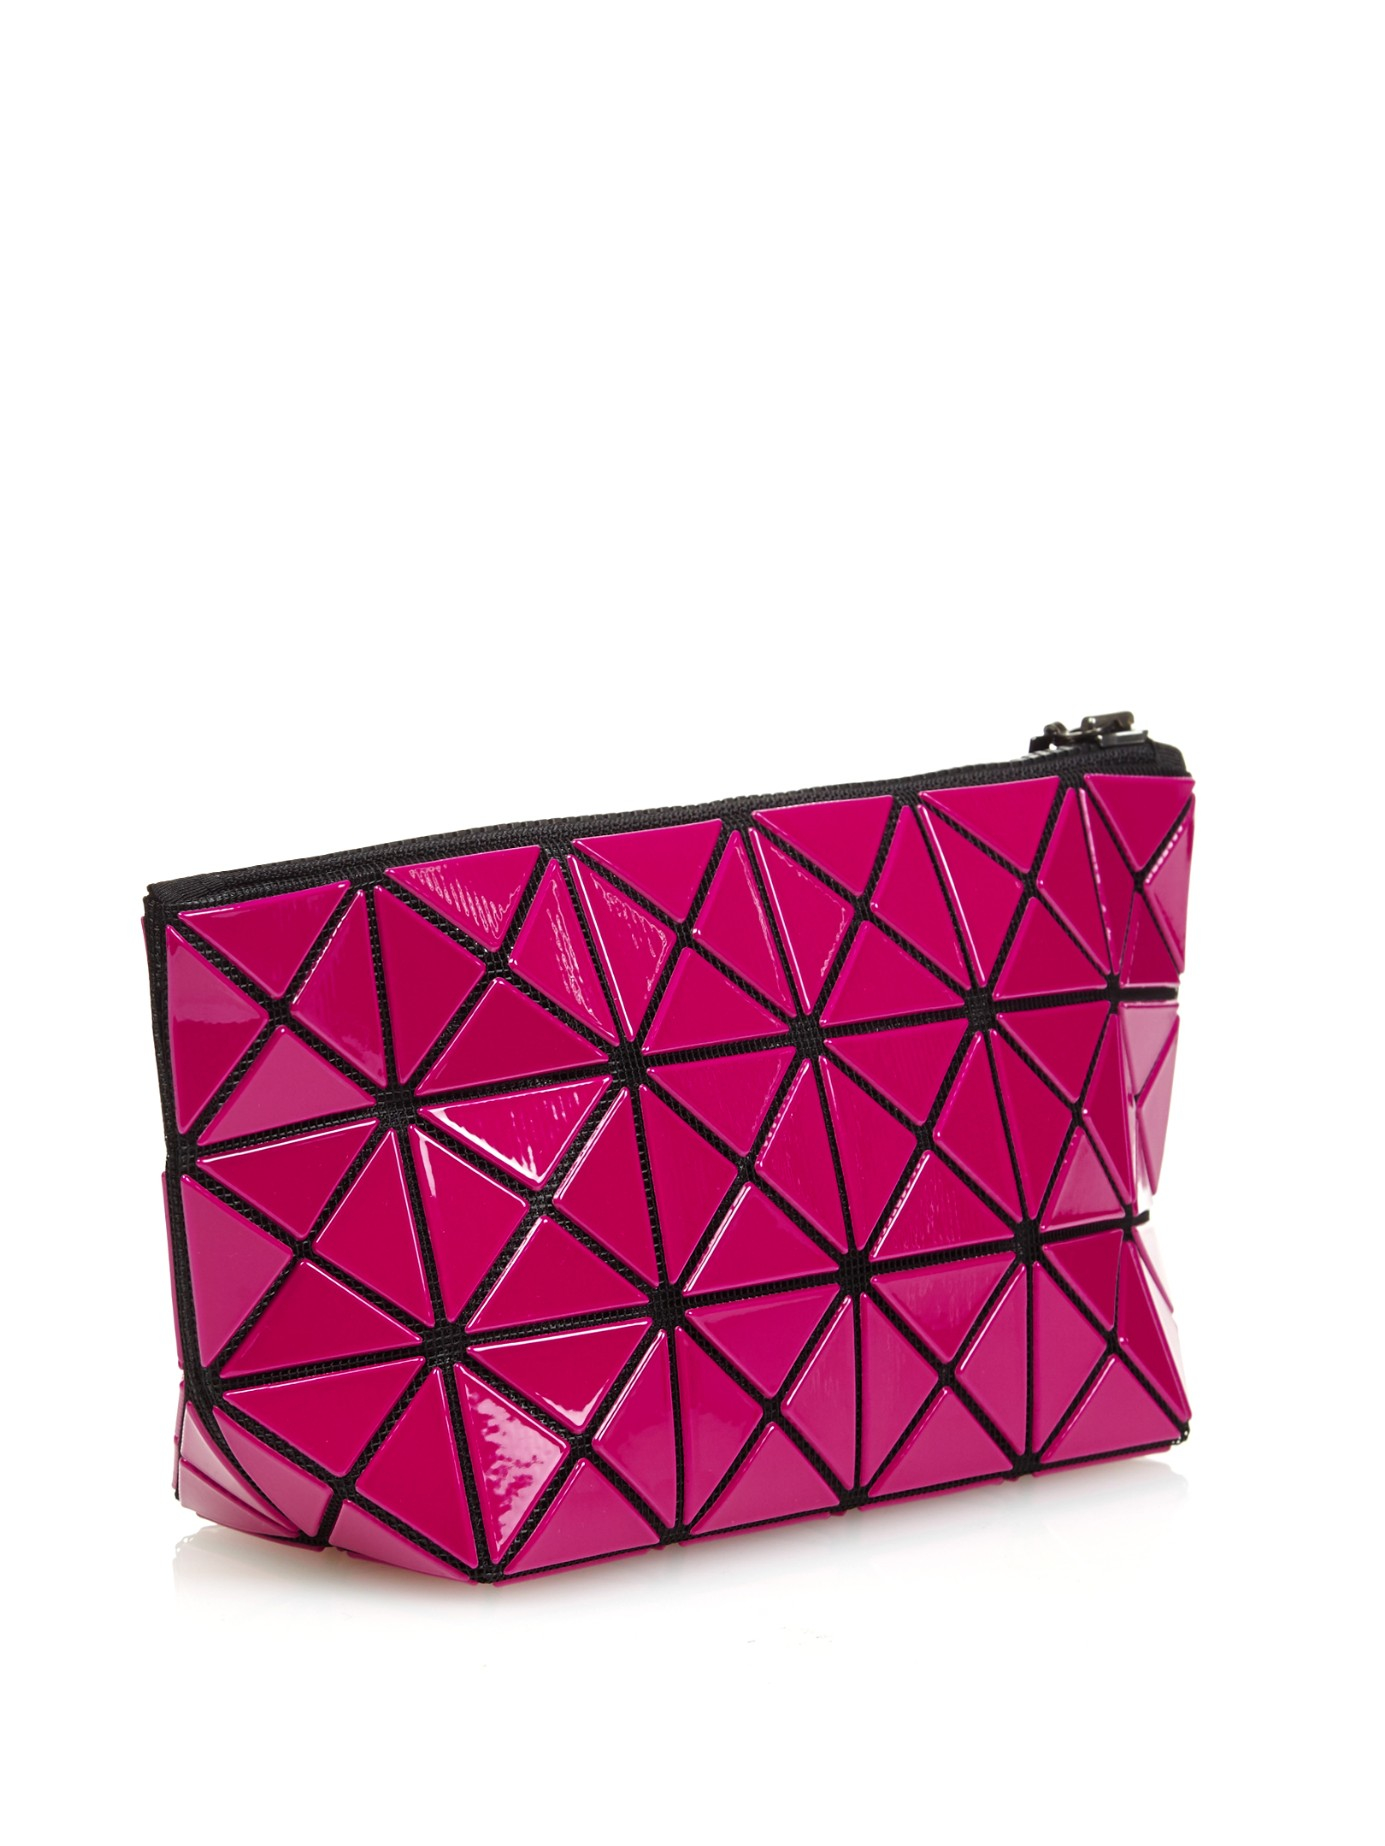 Lyst - Bao Bao Issey Miyake Lucent Basic Cosmetics Case in Pink ae7cc74cec